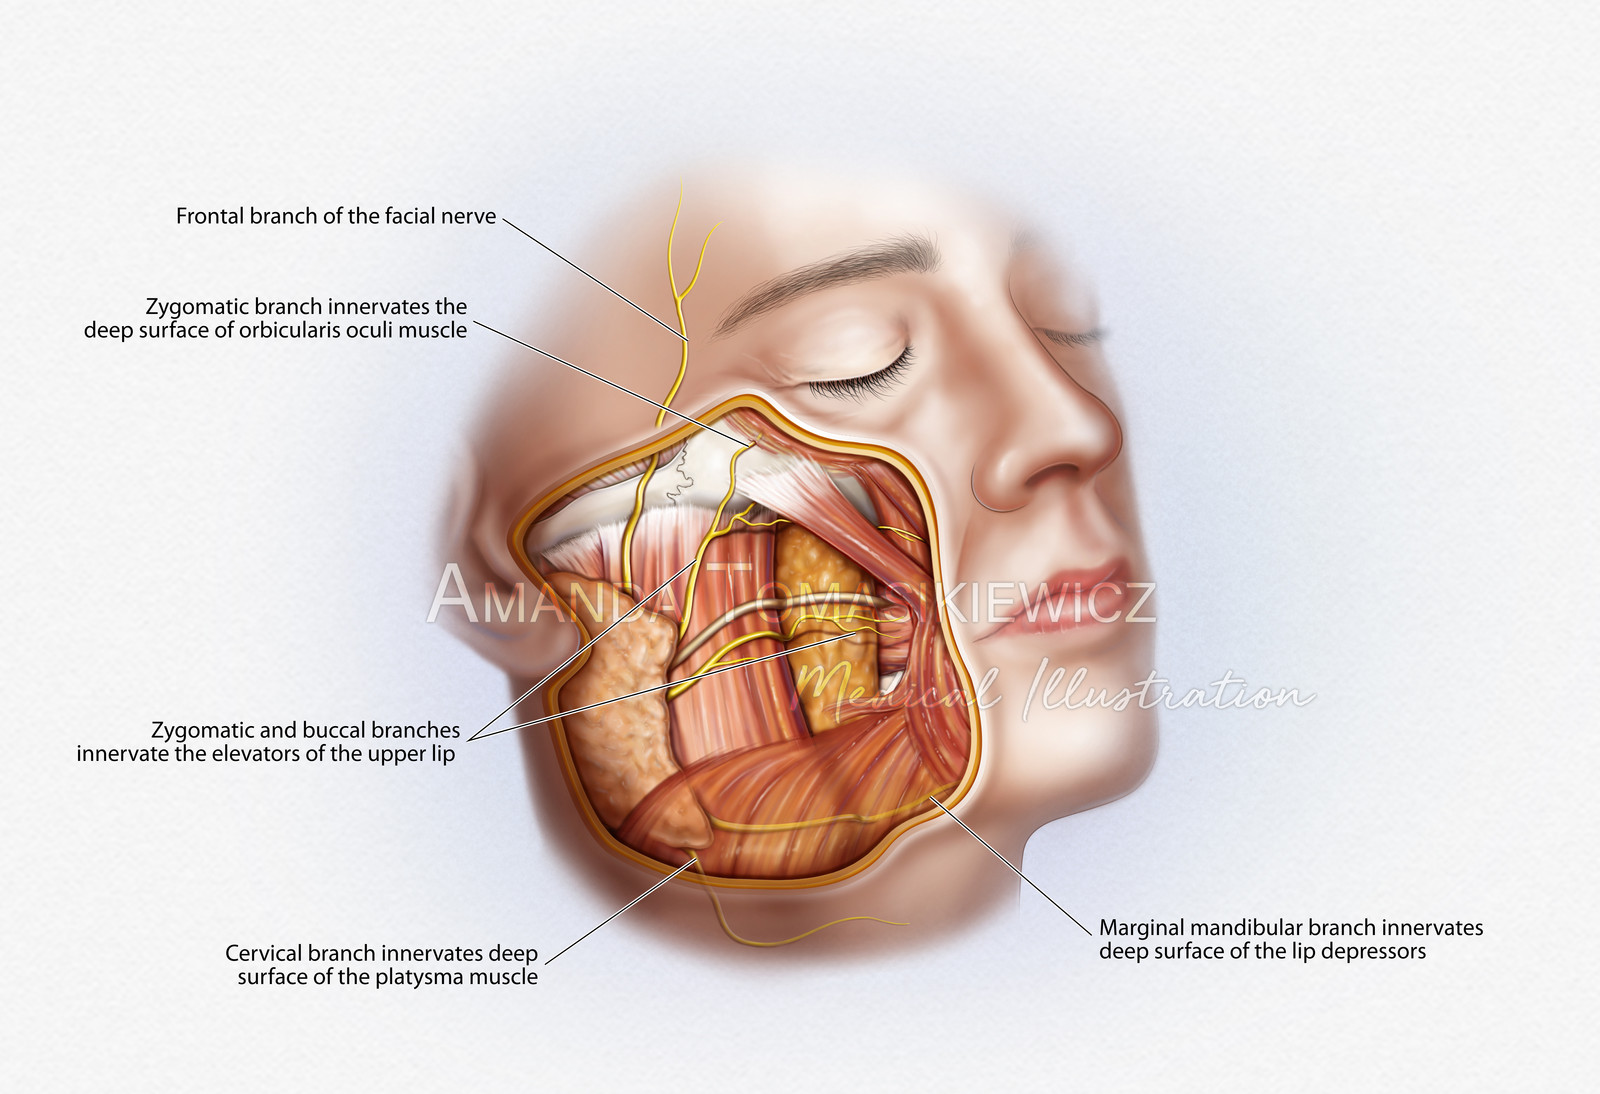 Facial Nerves And Mimetic Muscles